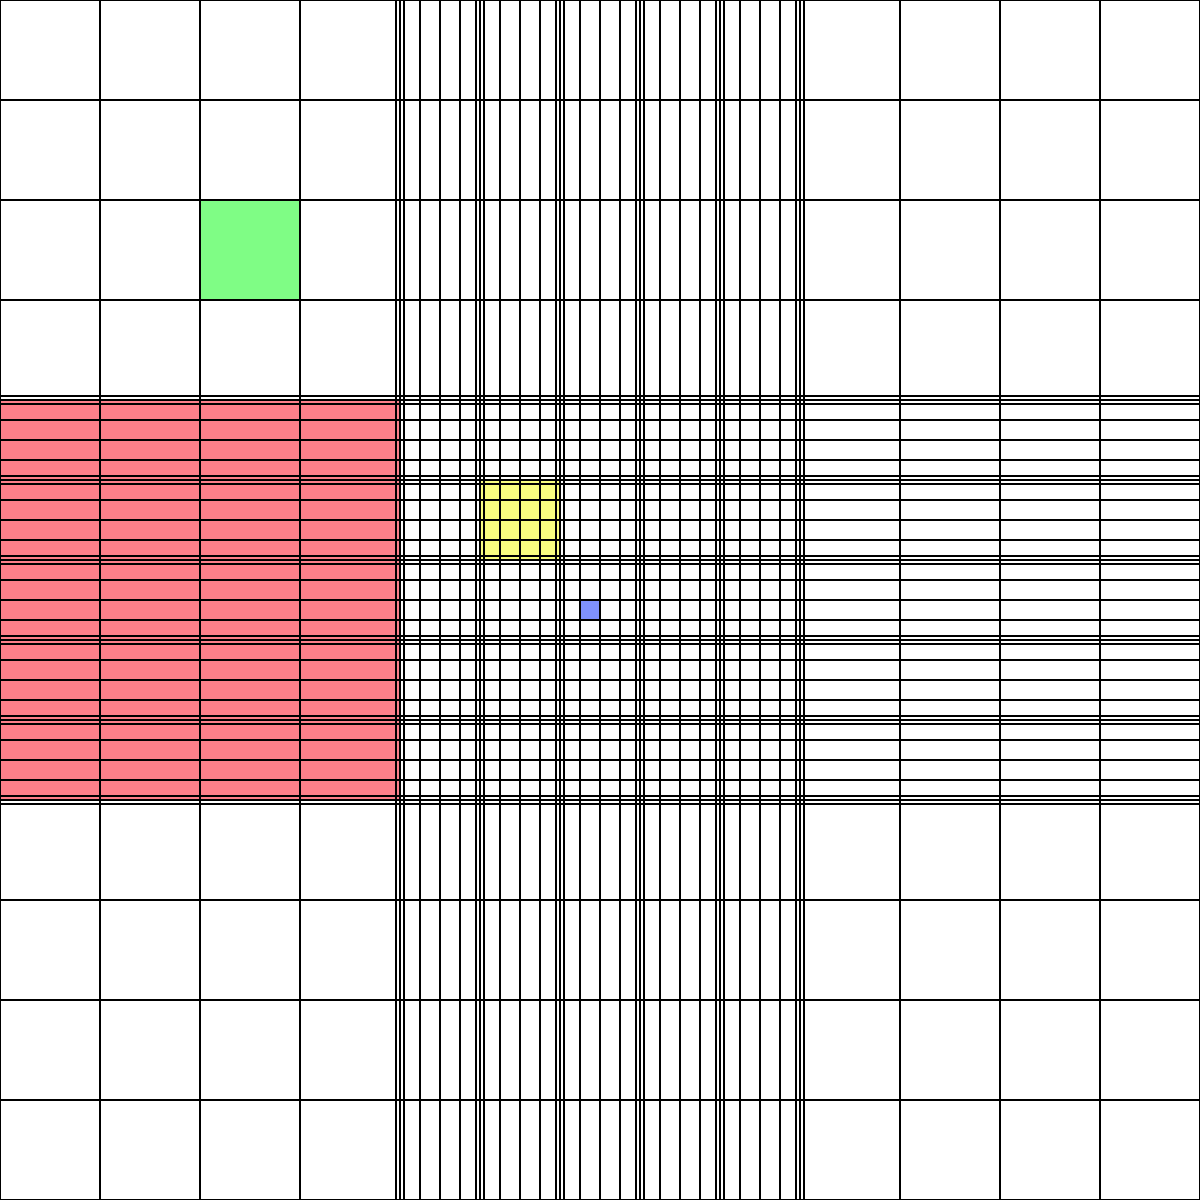 File:Haemocytometer Grid.png - Wikimedia Commons